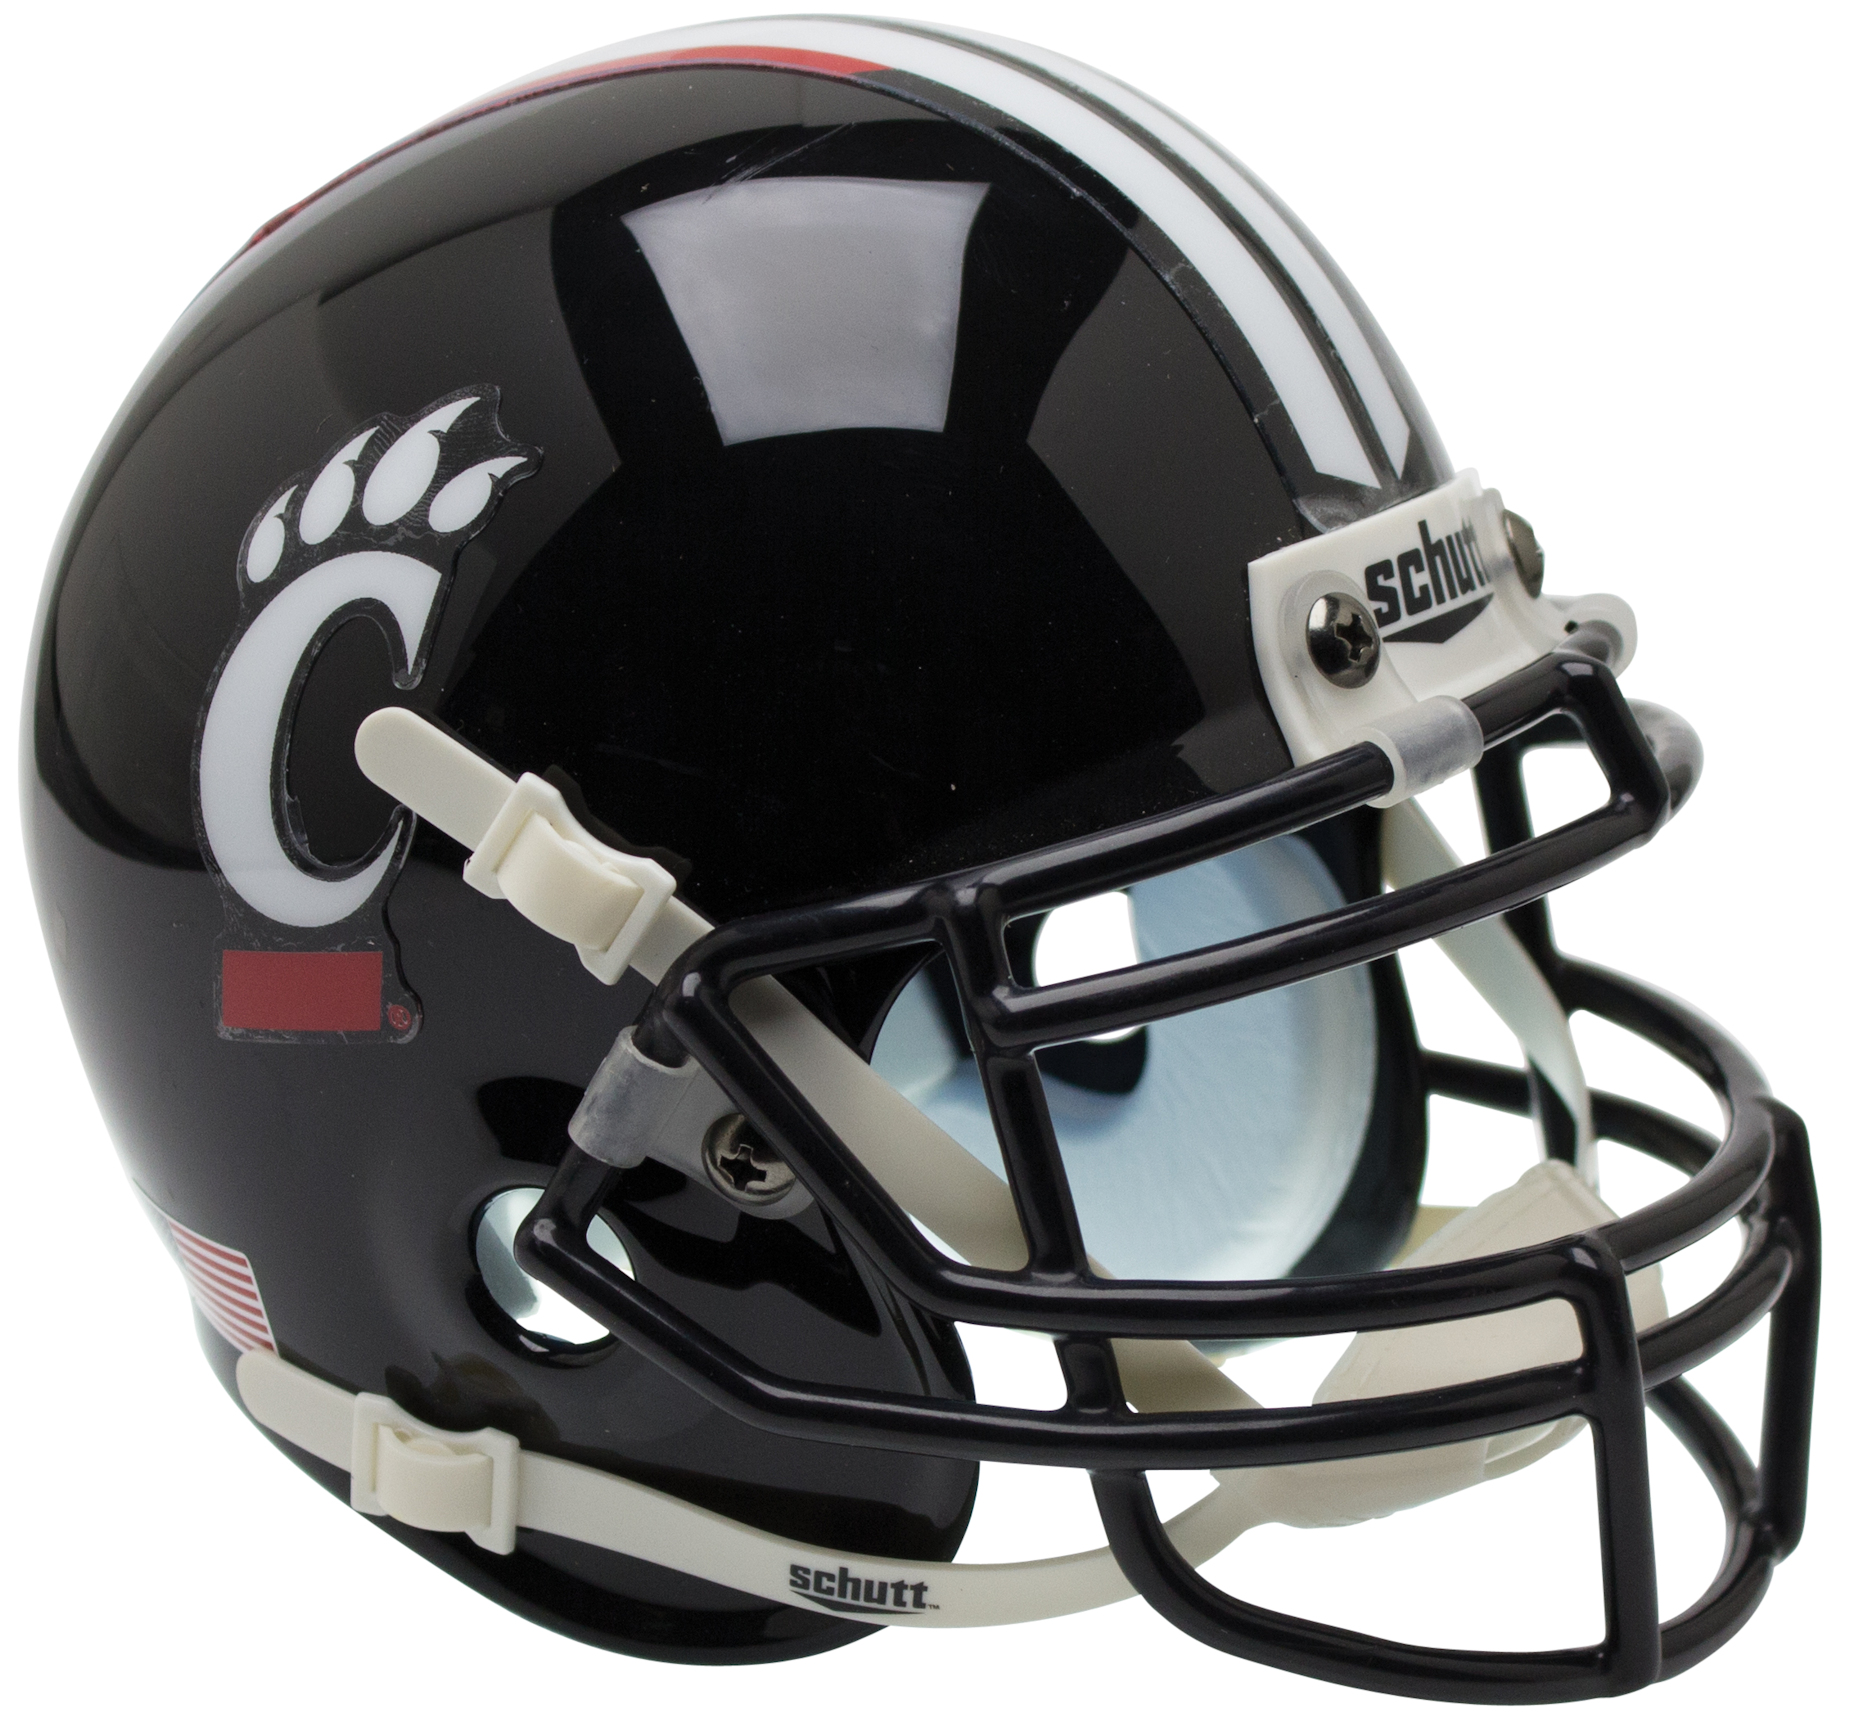 Cincinnati Bearcats Authentic College XP Football Helmet Schutt <B>Black</B>